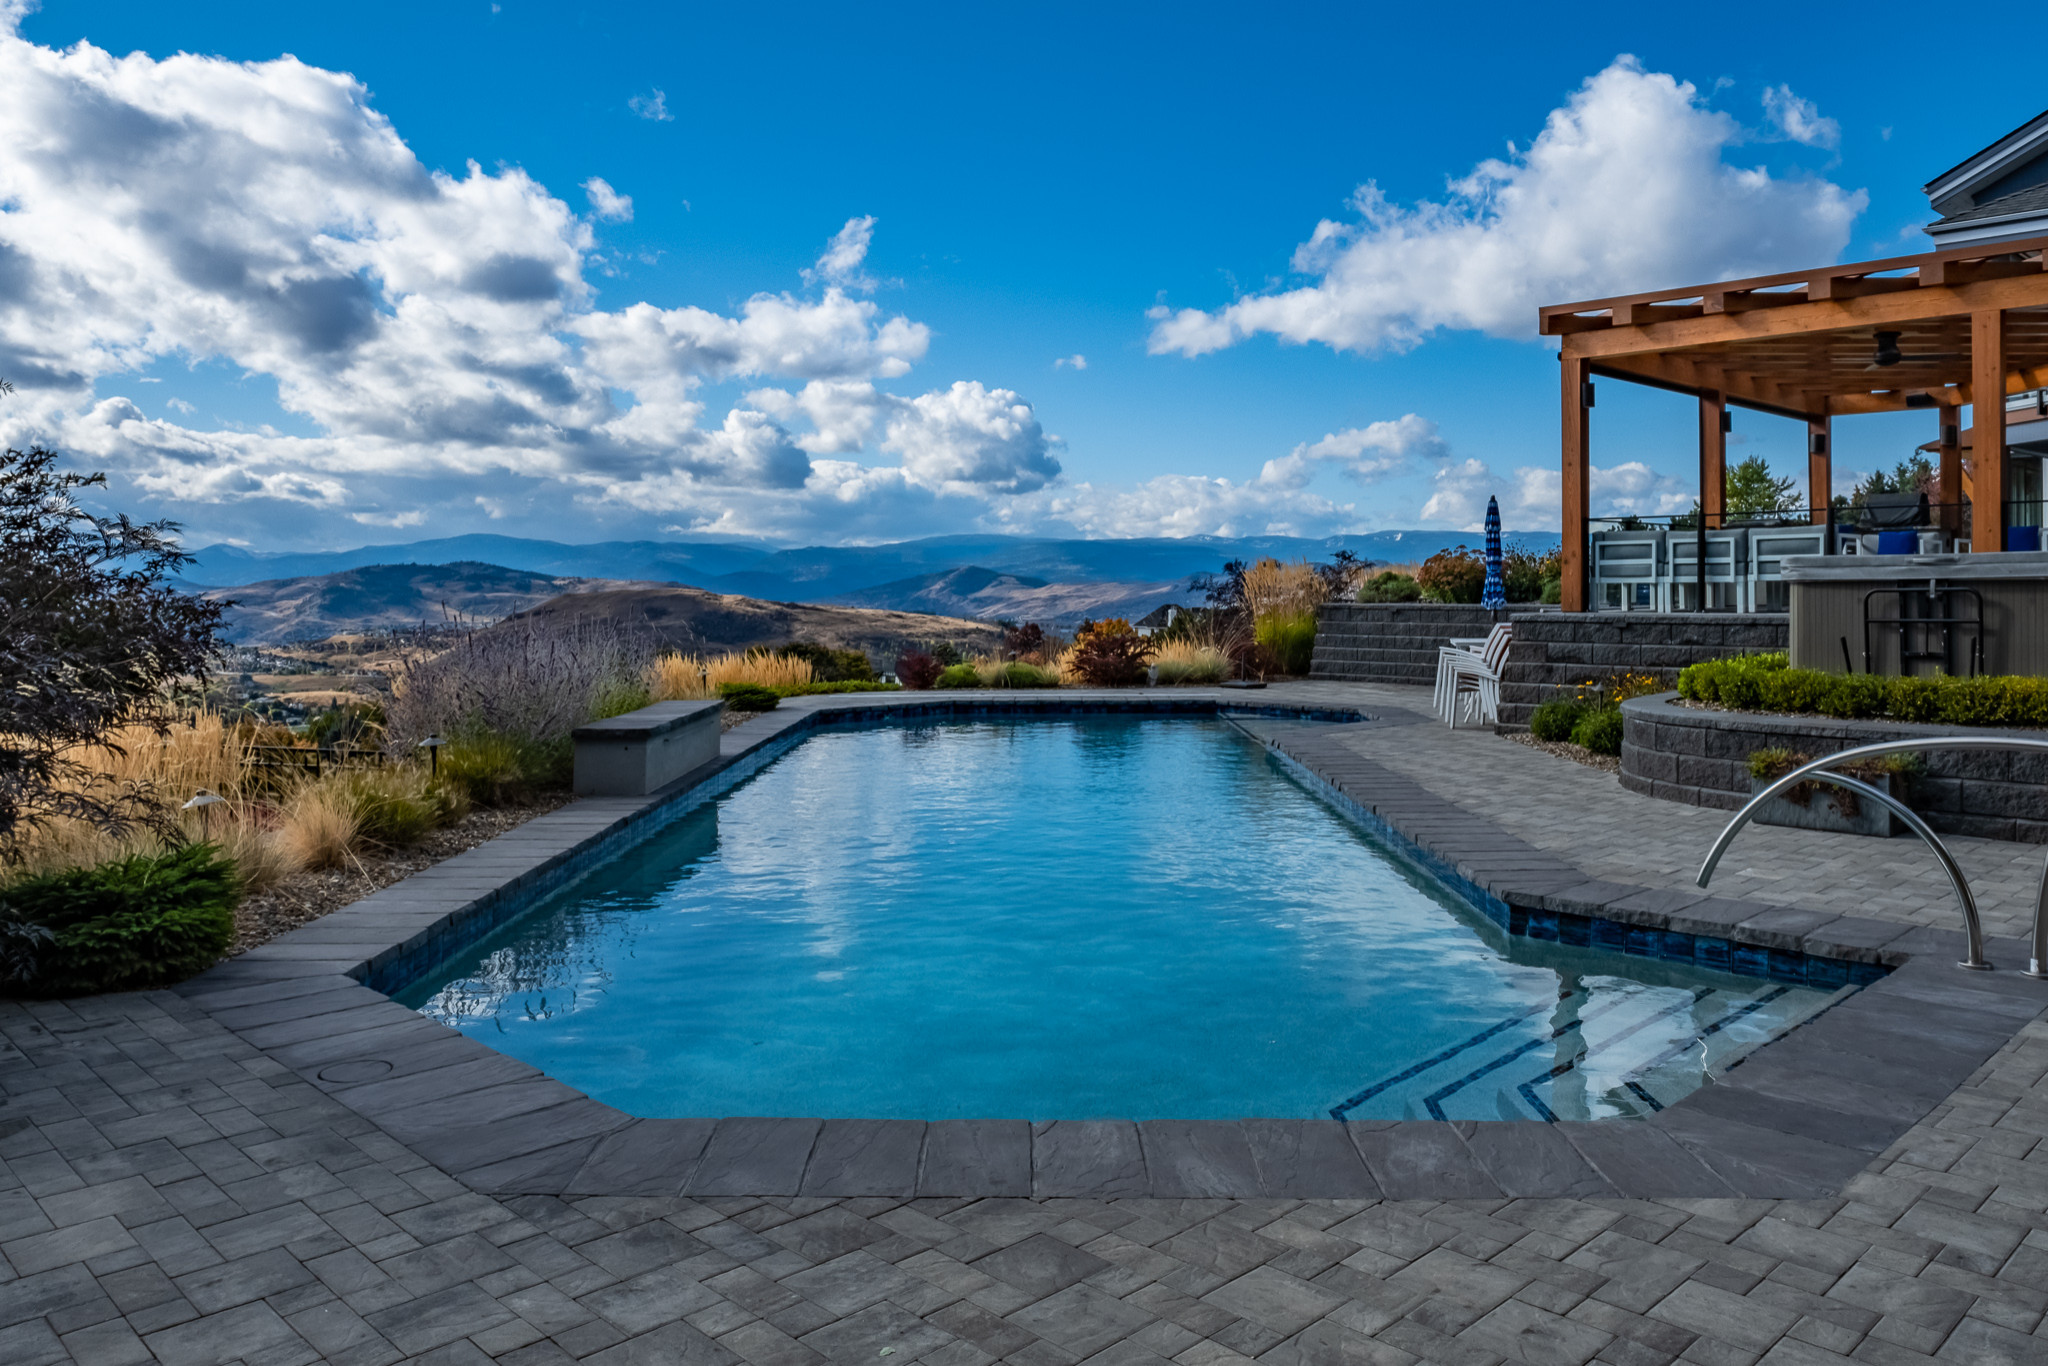 Concrete Pool with a View